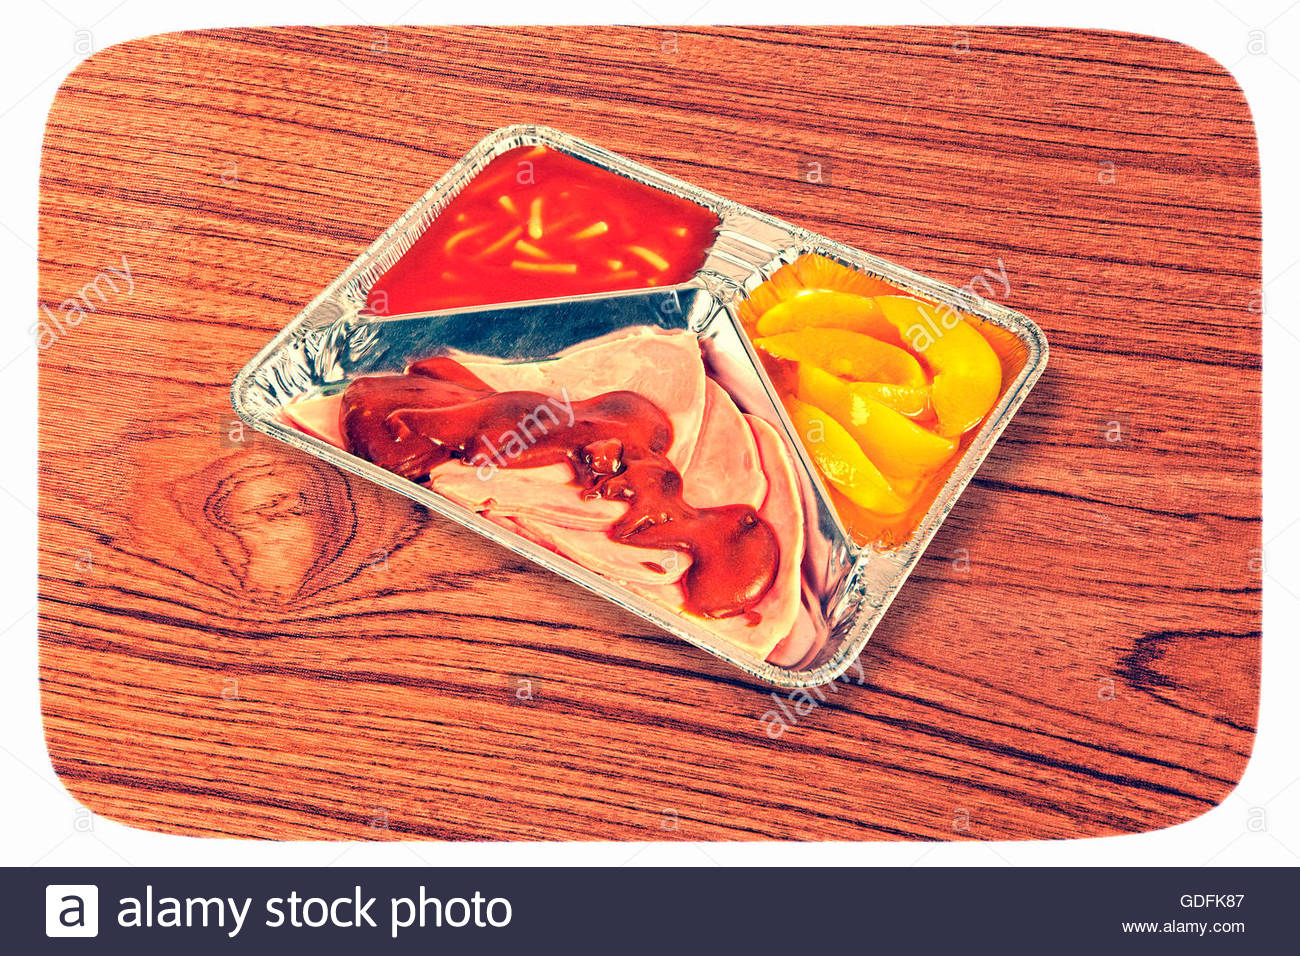 TV dinner tray vintage retro meal aluminium food dish on wooden table Stock Photo